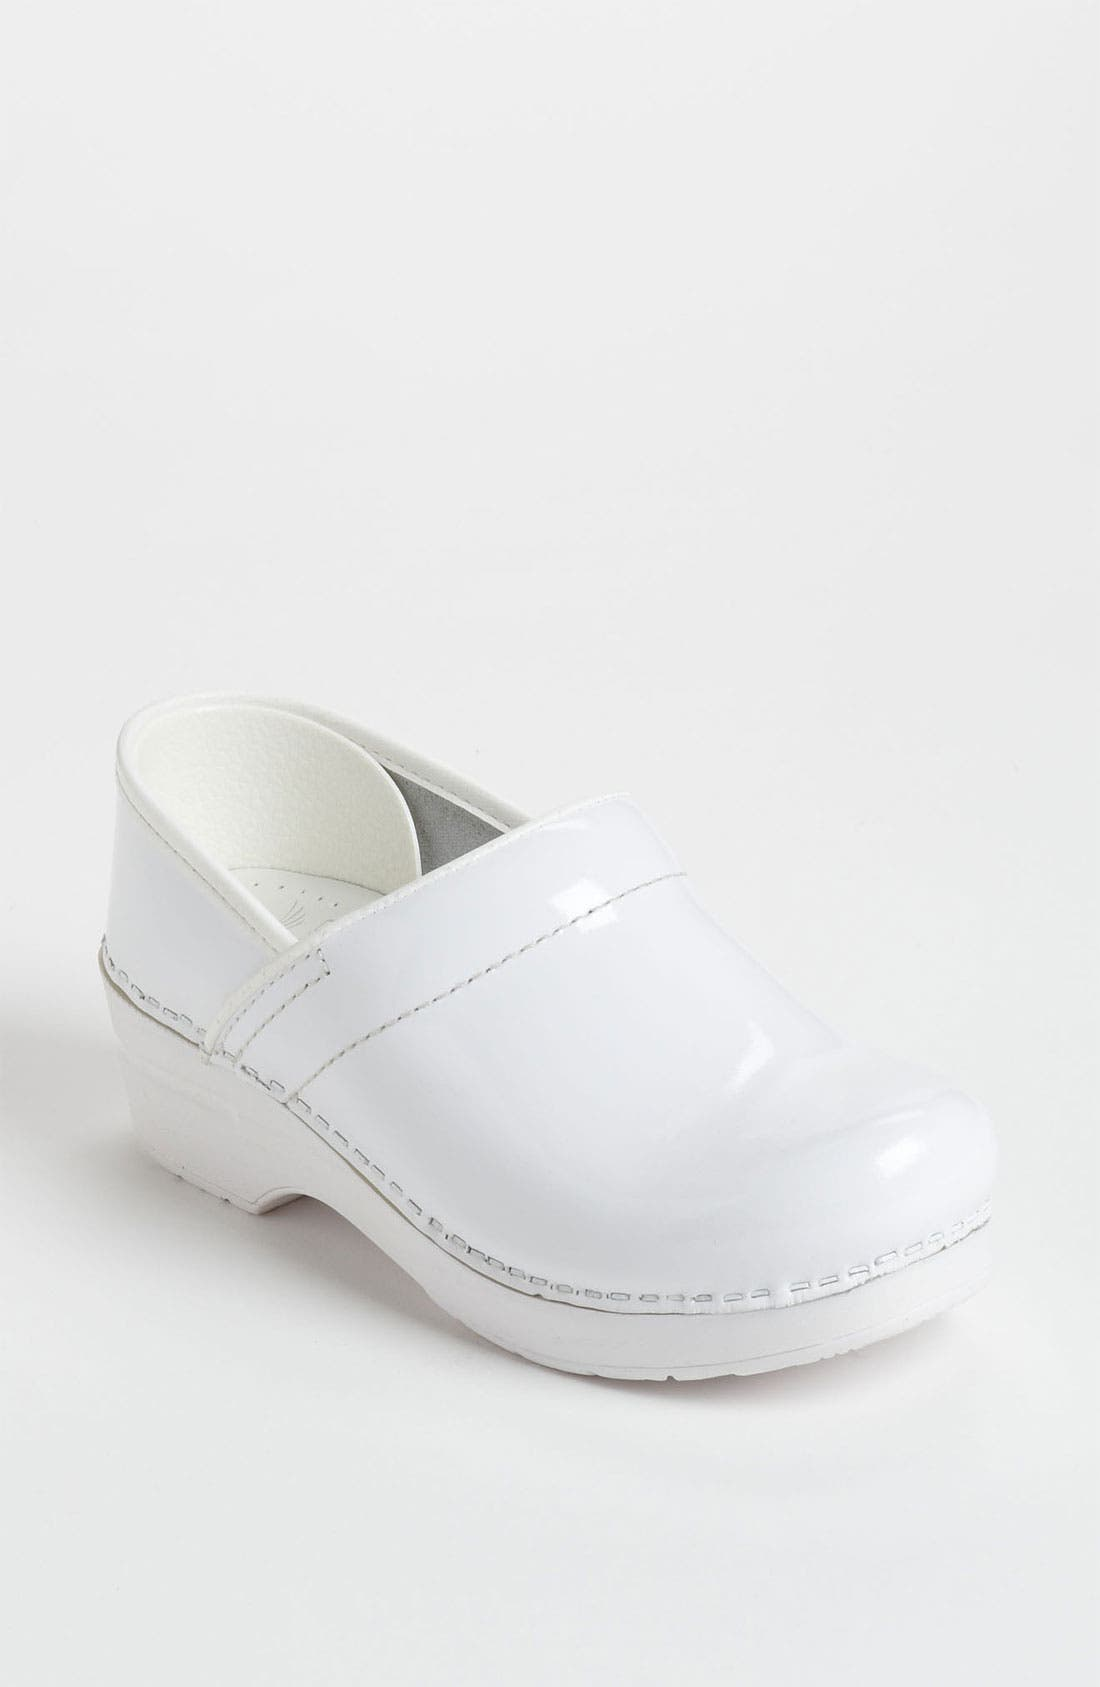 'Professional' Clog,                         Main,                         color, White Patent